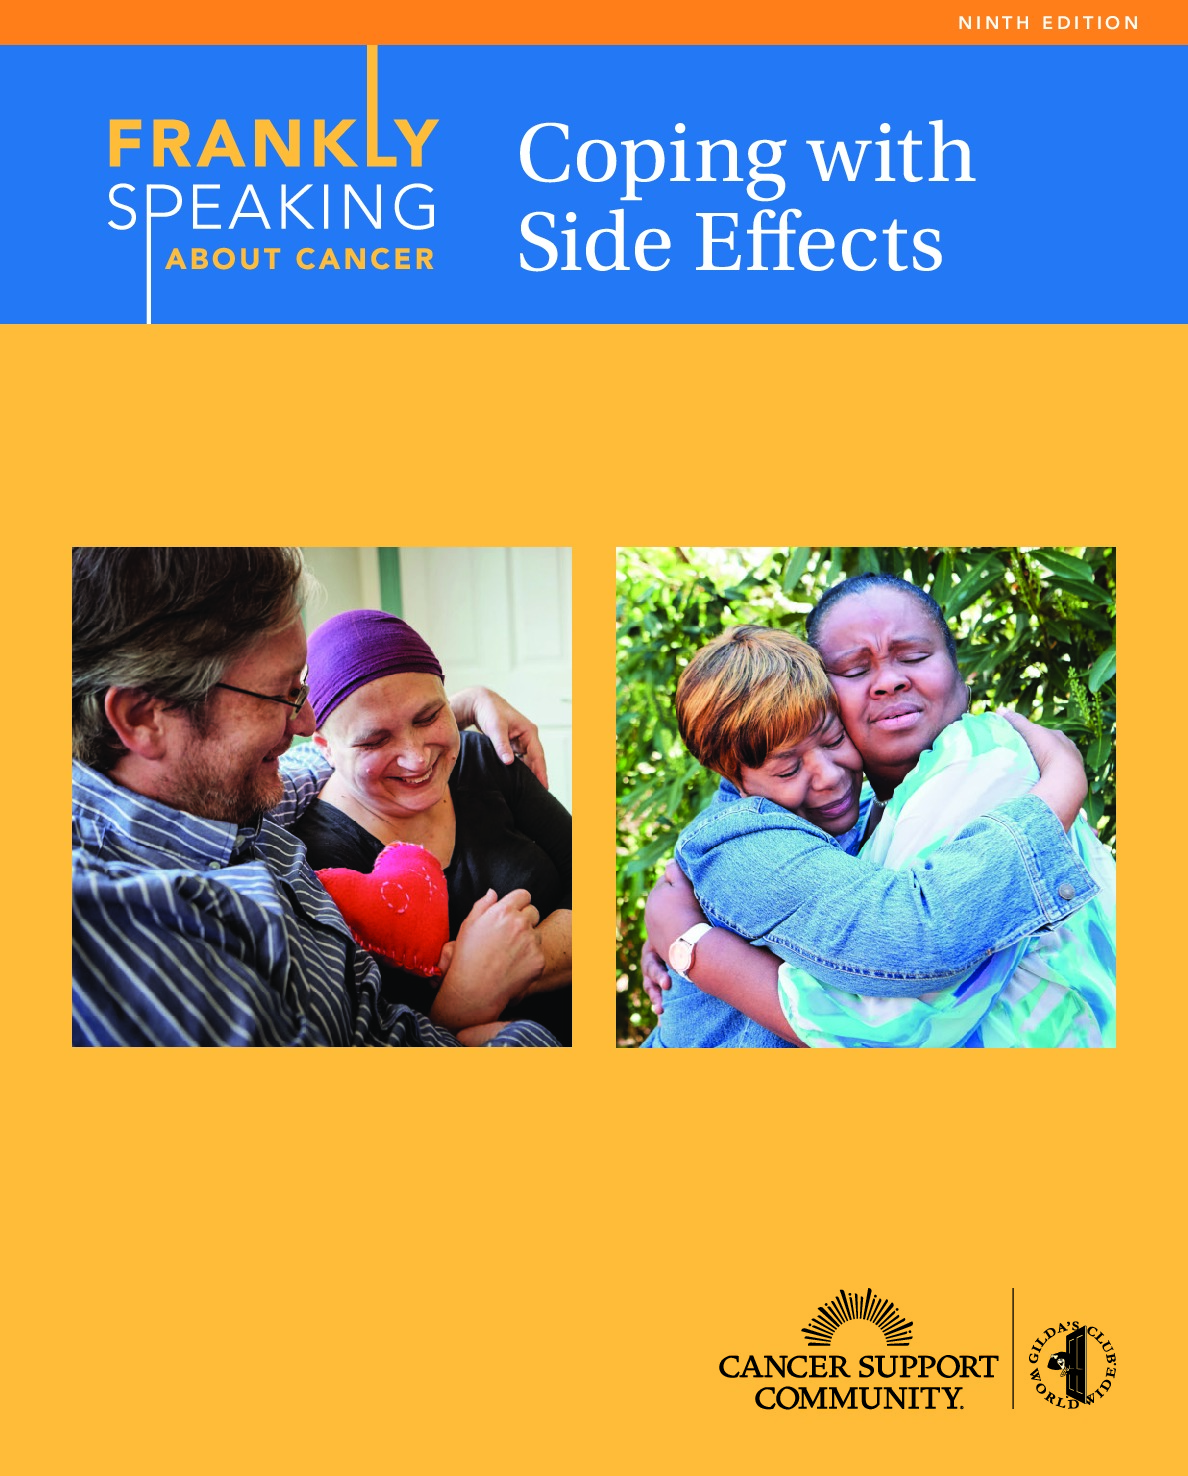 FSAC Coping with Side Effects Book